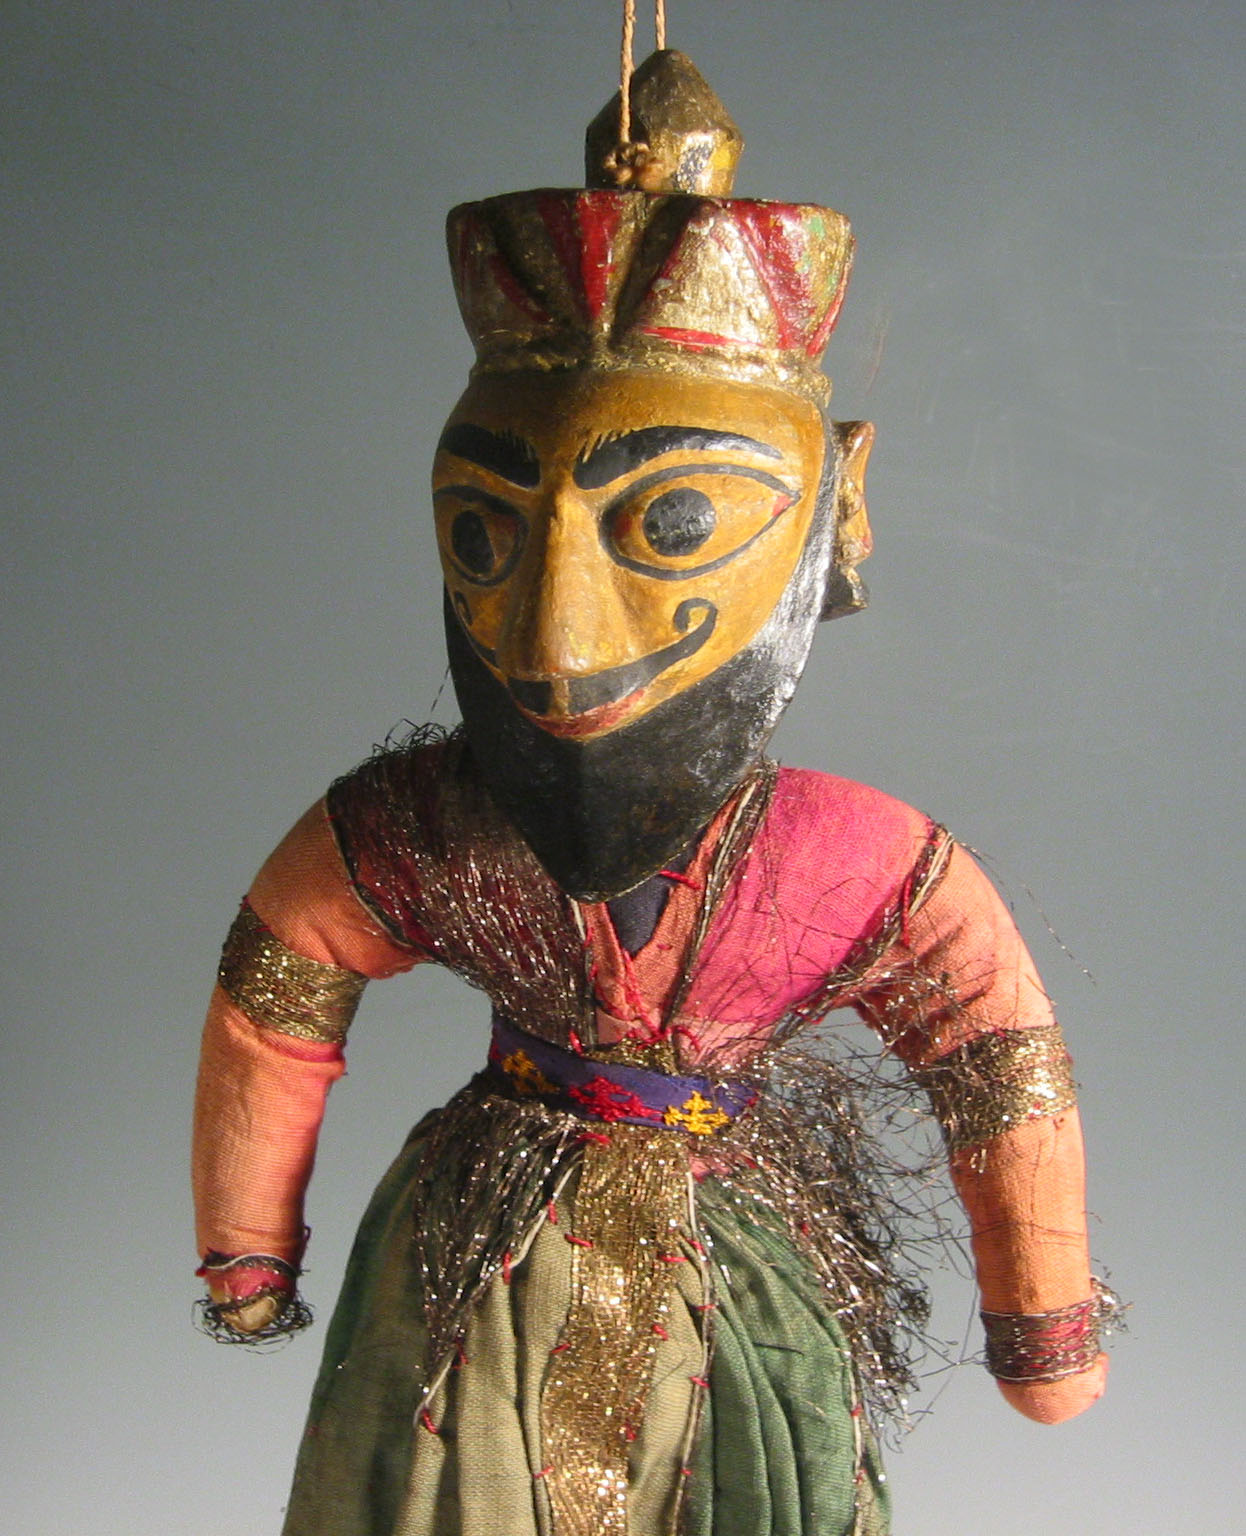 Un détail, un guerrier-<em>c</em>ourtisan moghol, une marionnette à fils, <em>kathputli</em>, du Rajasthan, en Inde, hauteur : 60 <em>c</em>m. Colle<em>c</em>tion : Center for Puppetry Arts (Atlanta, Géorgie, États-Unis). Photo réproduite avec l'aimable autorisation de Center for Puppetry Arts